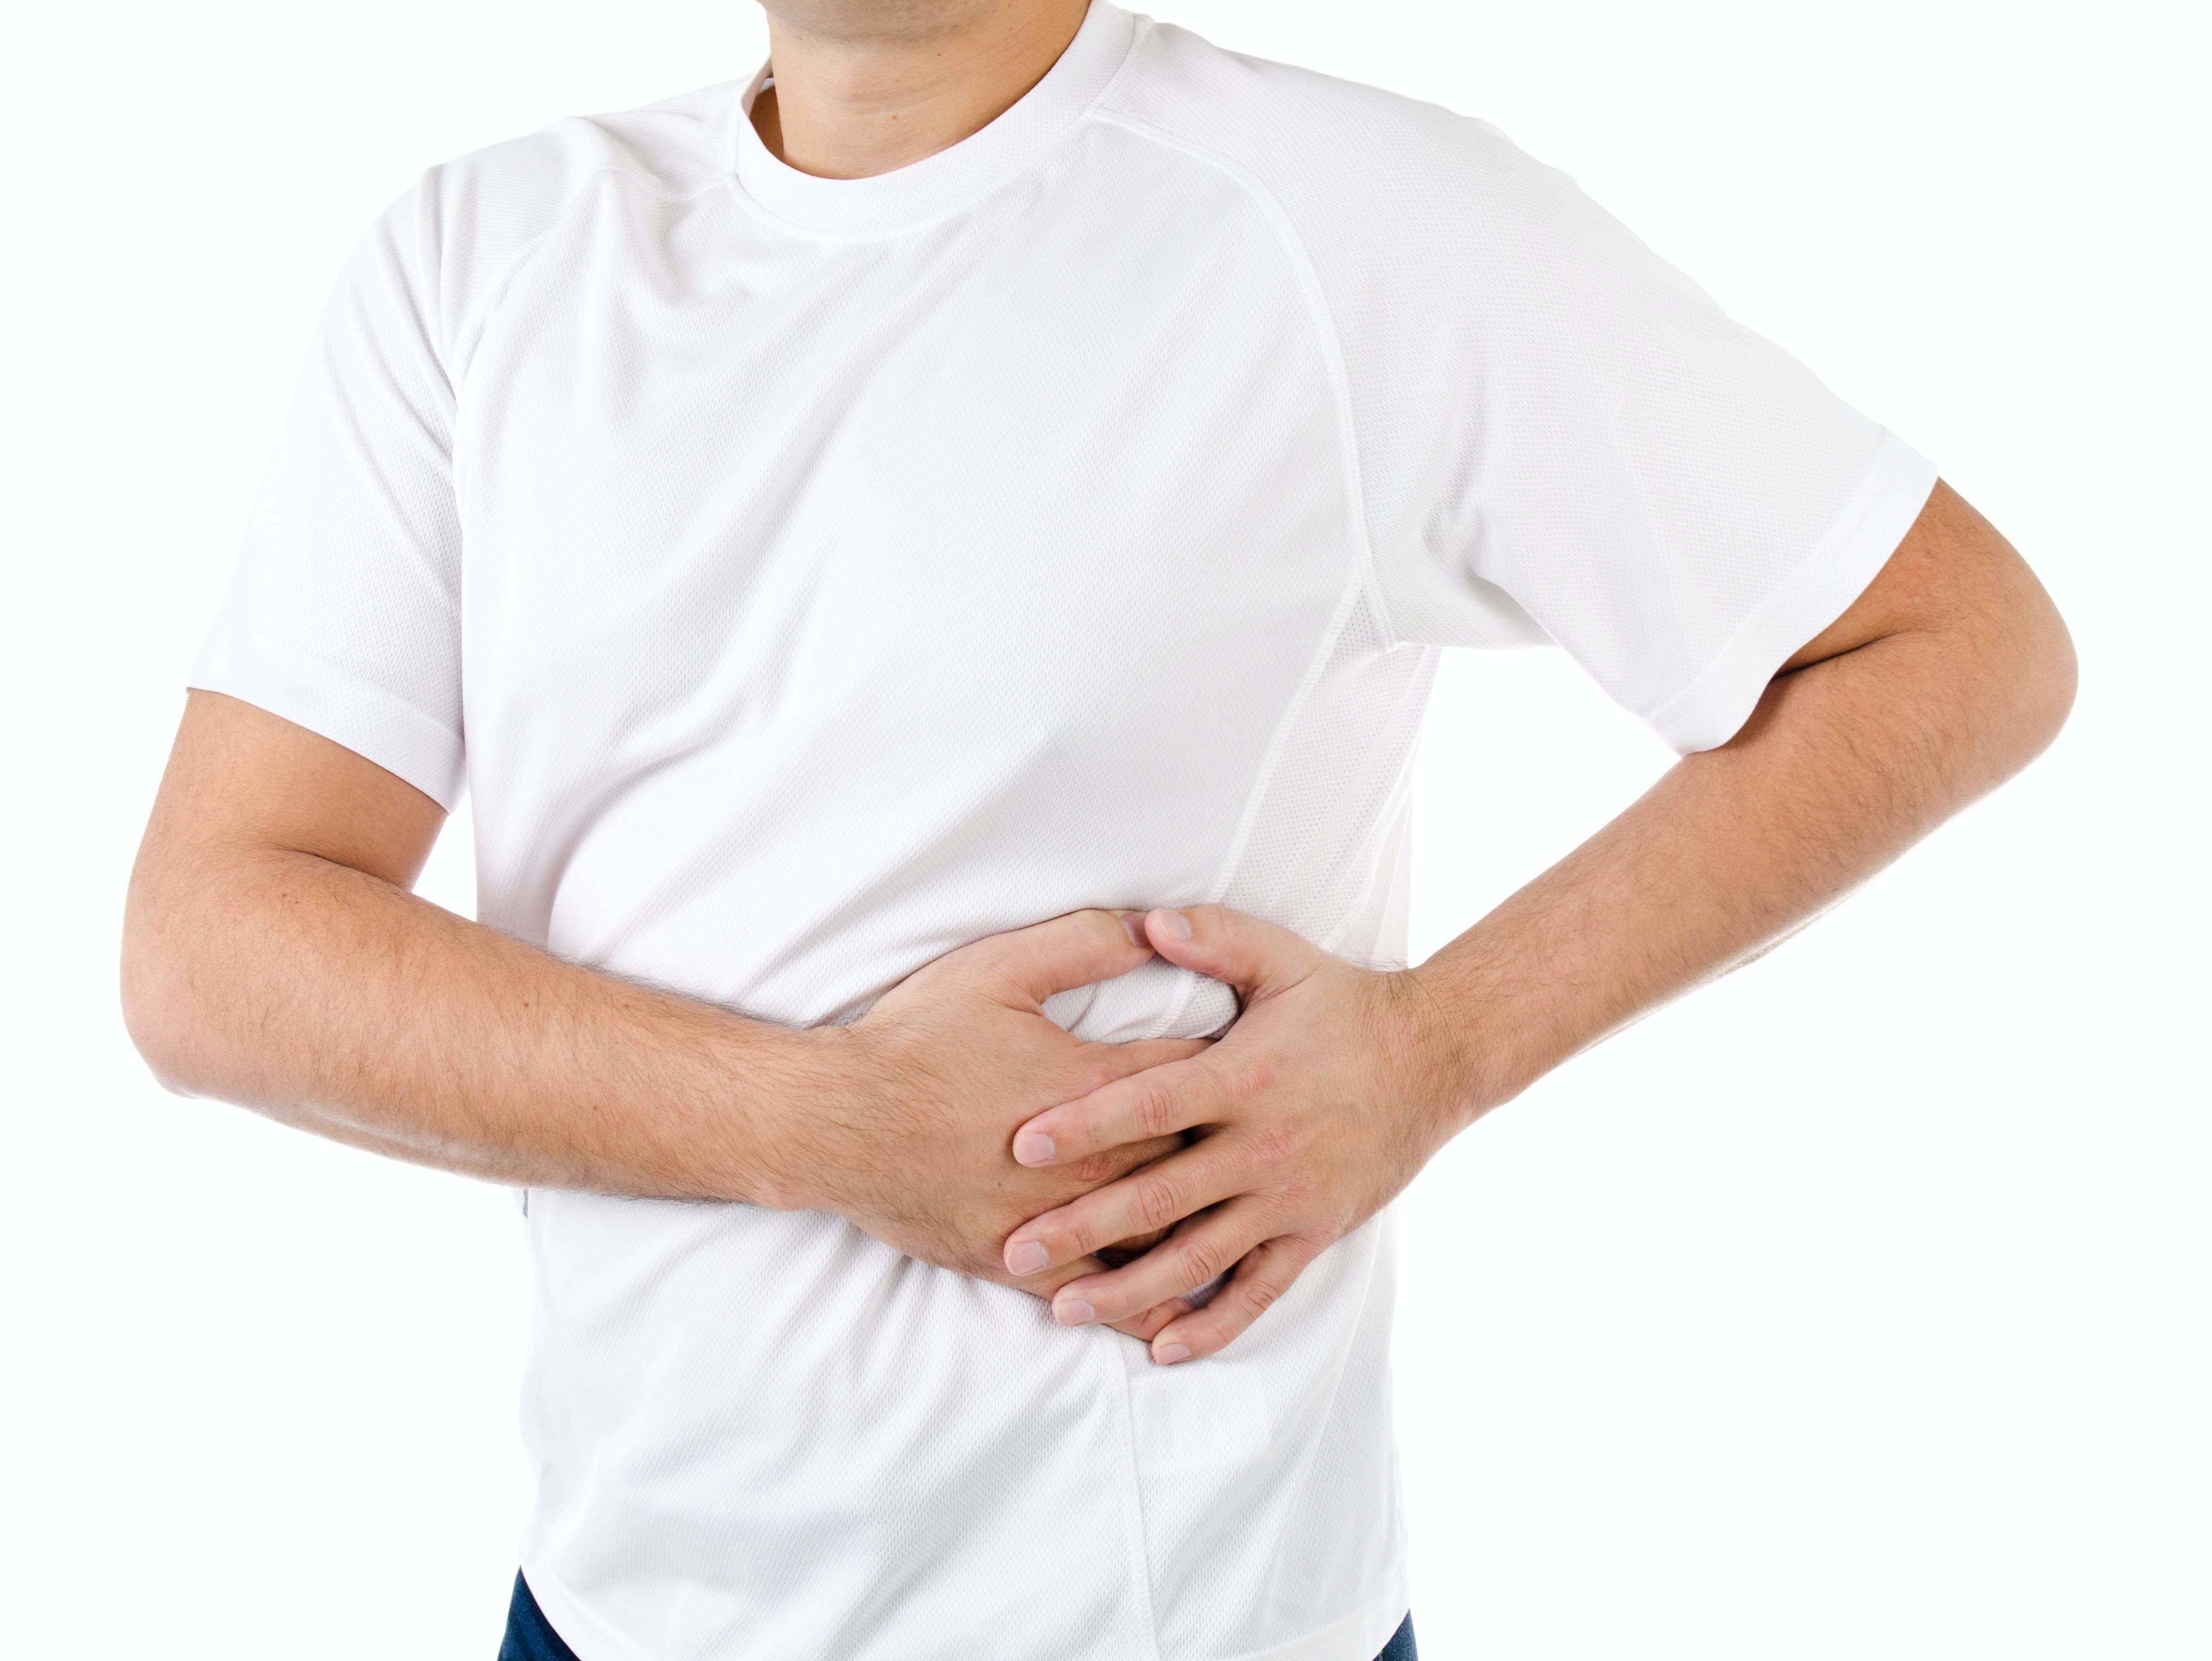 An image depicting a person suffering from lump on the upper left abdomen symptoms